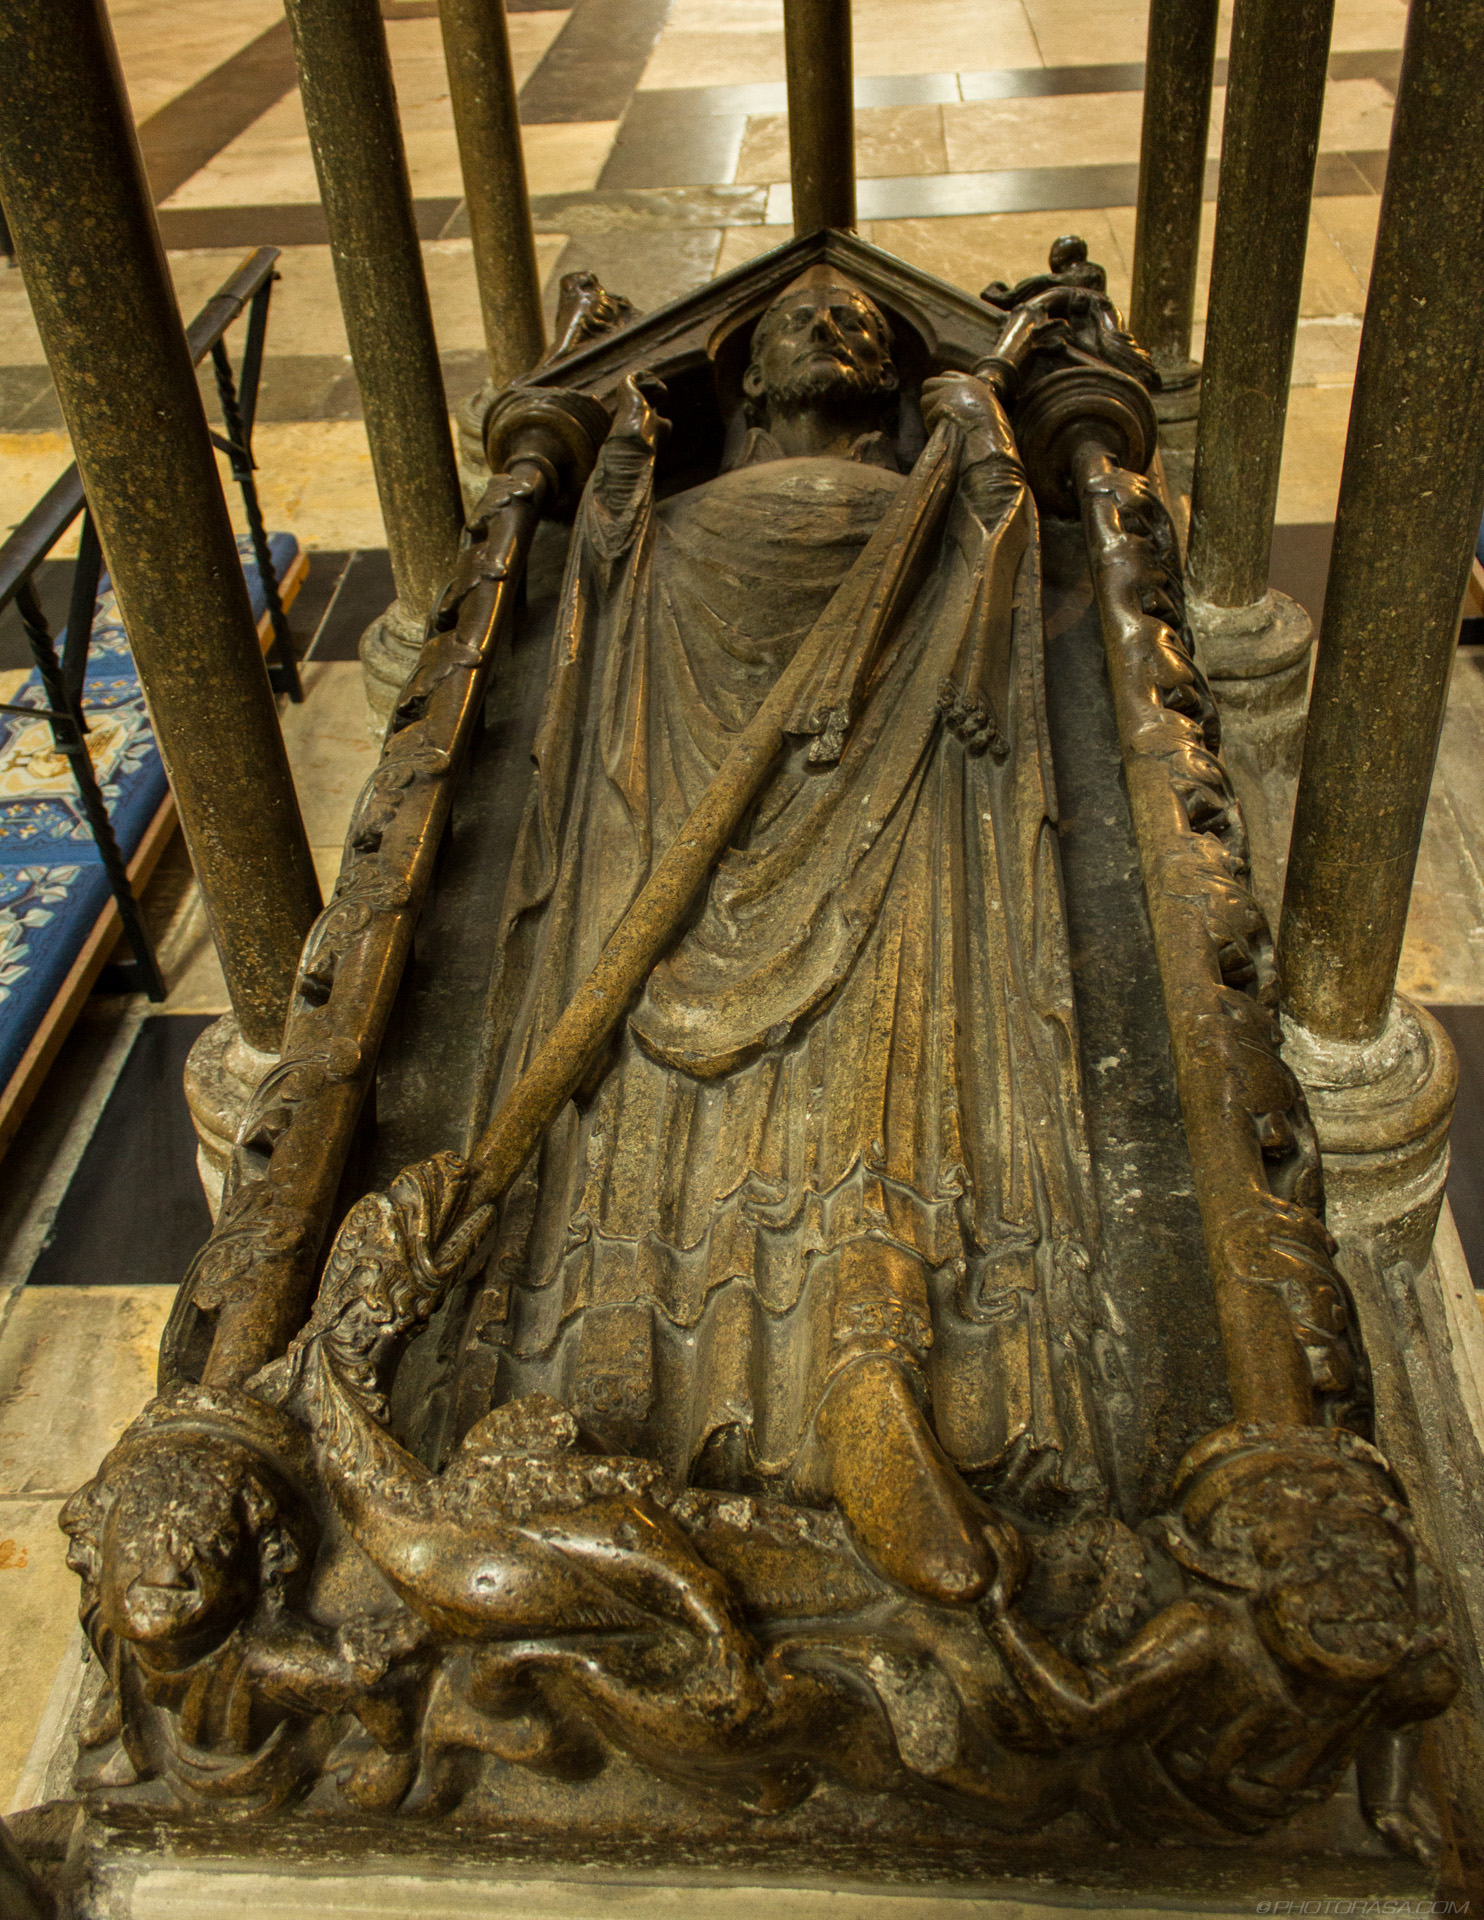 https://photorasa.com/yorkminster-cathedral/tomb-of-a-bishop/